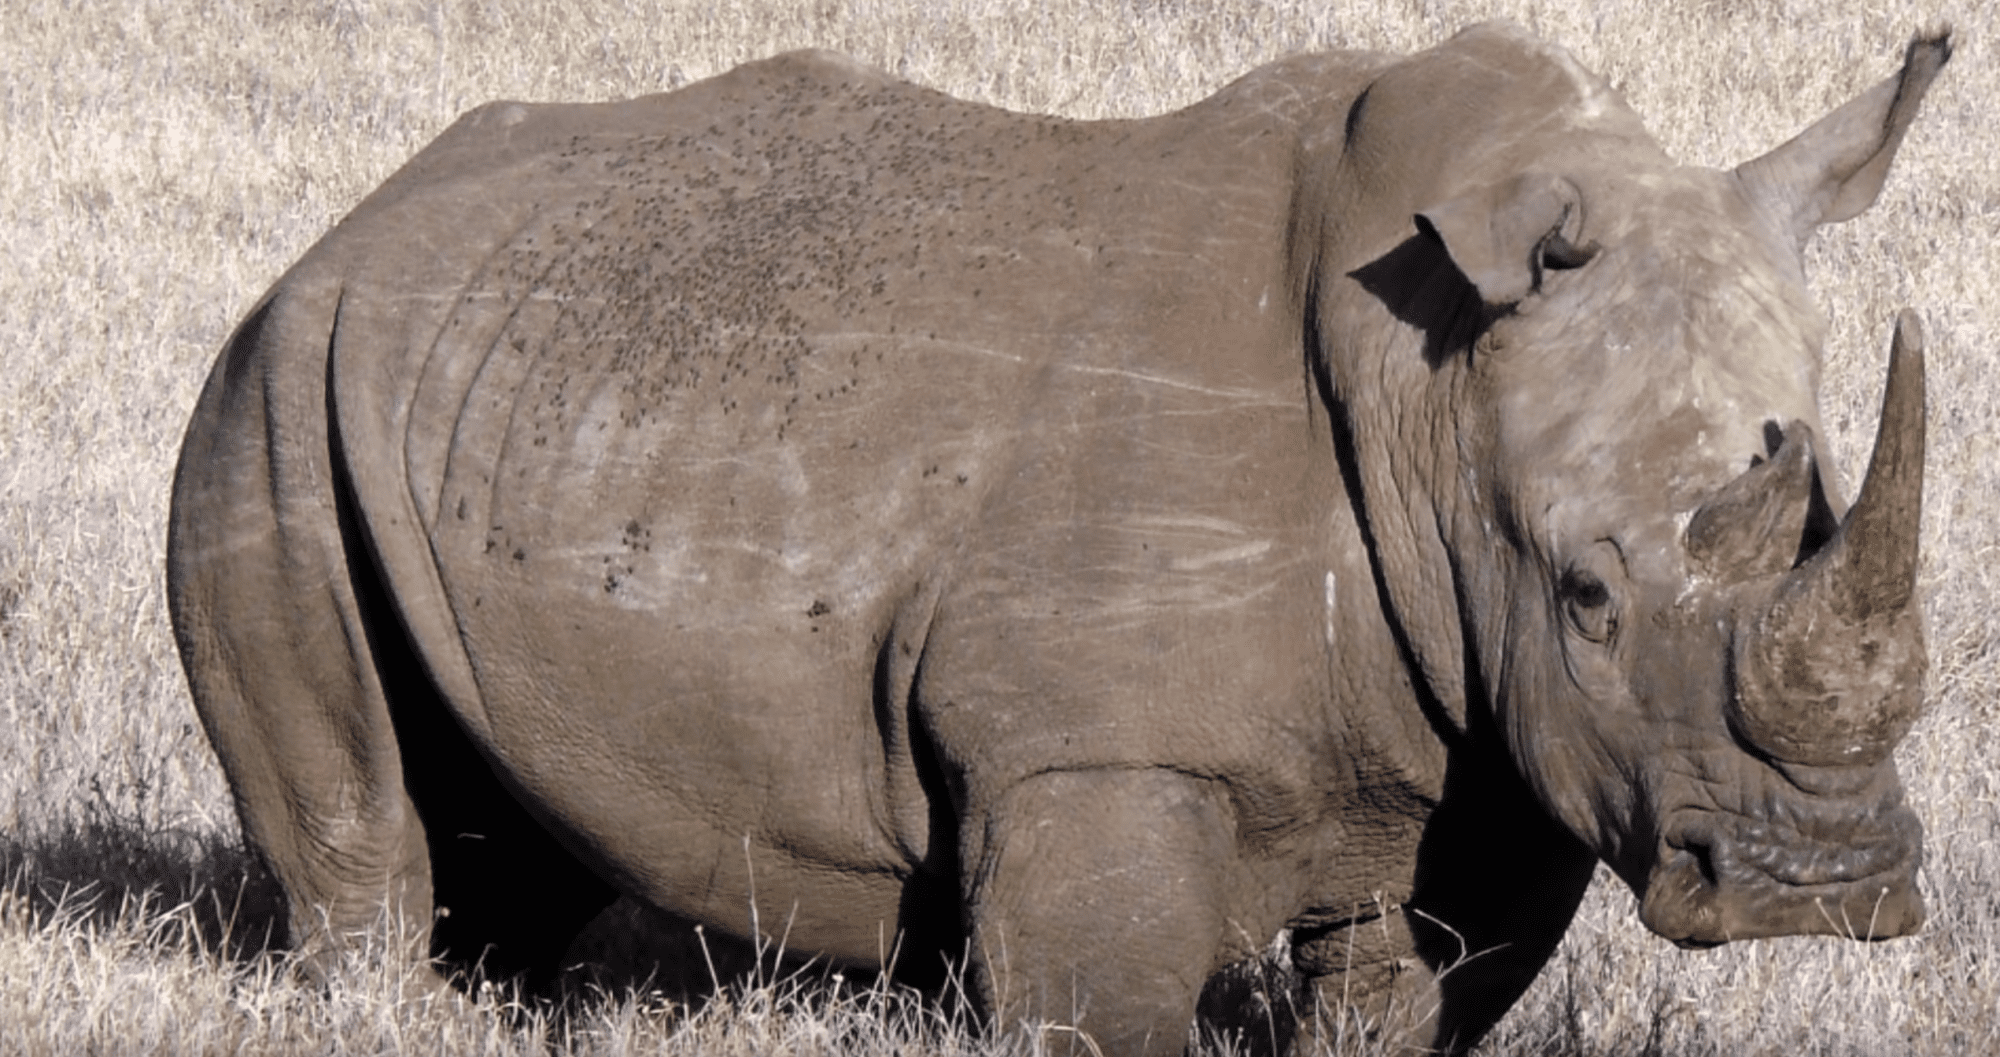 Rhino poacher killed by an elephant and then eaten by lions in South